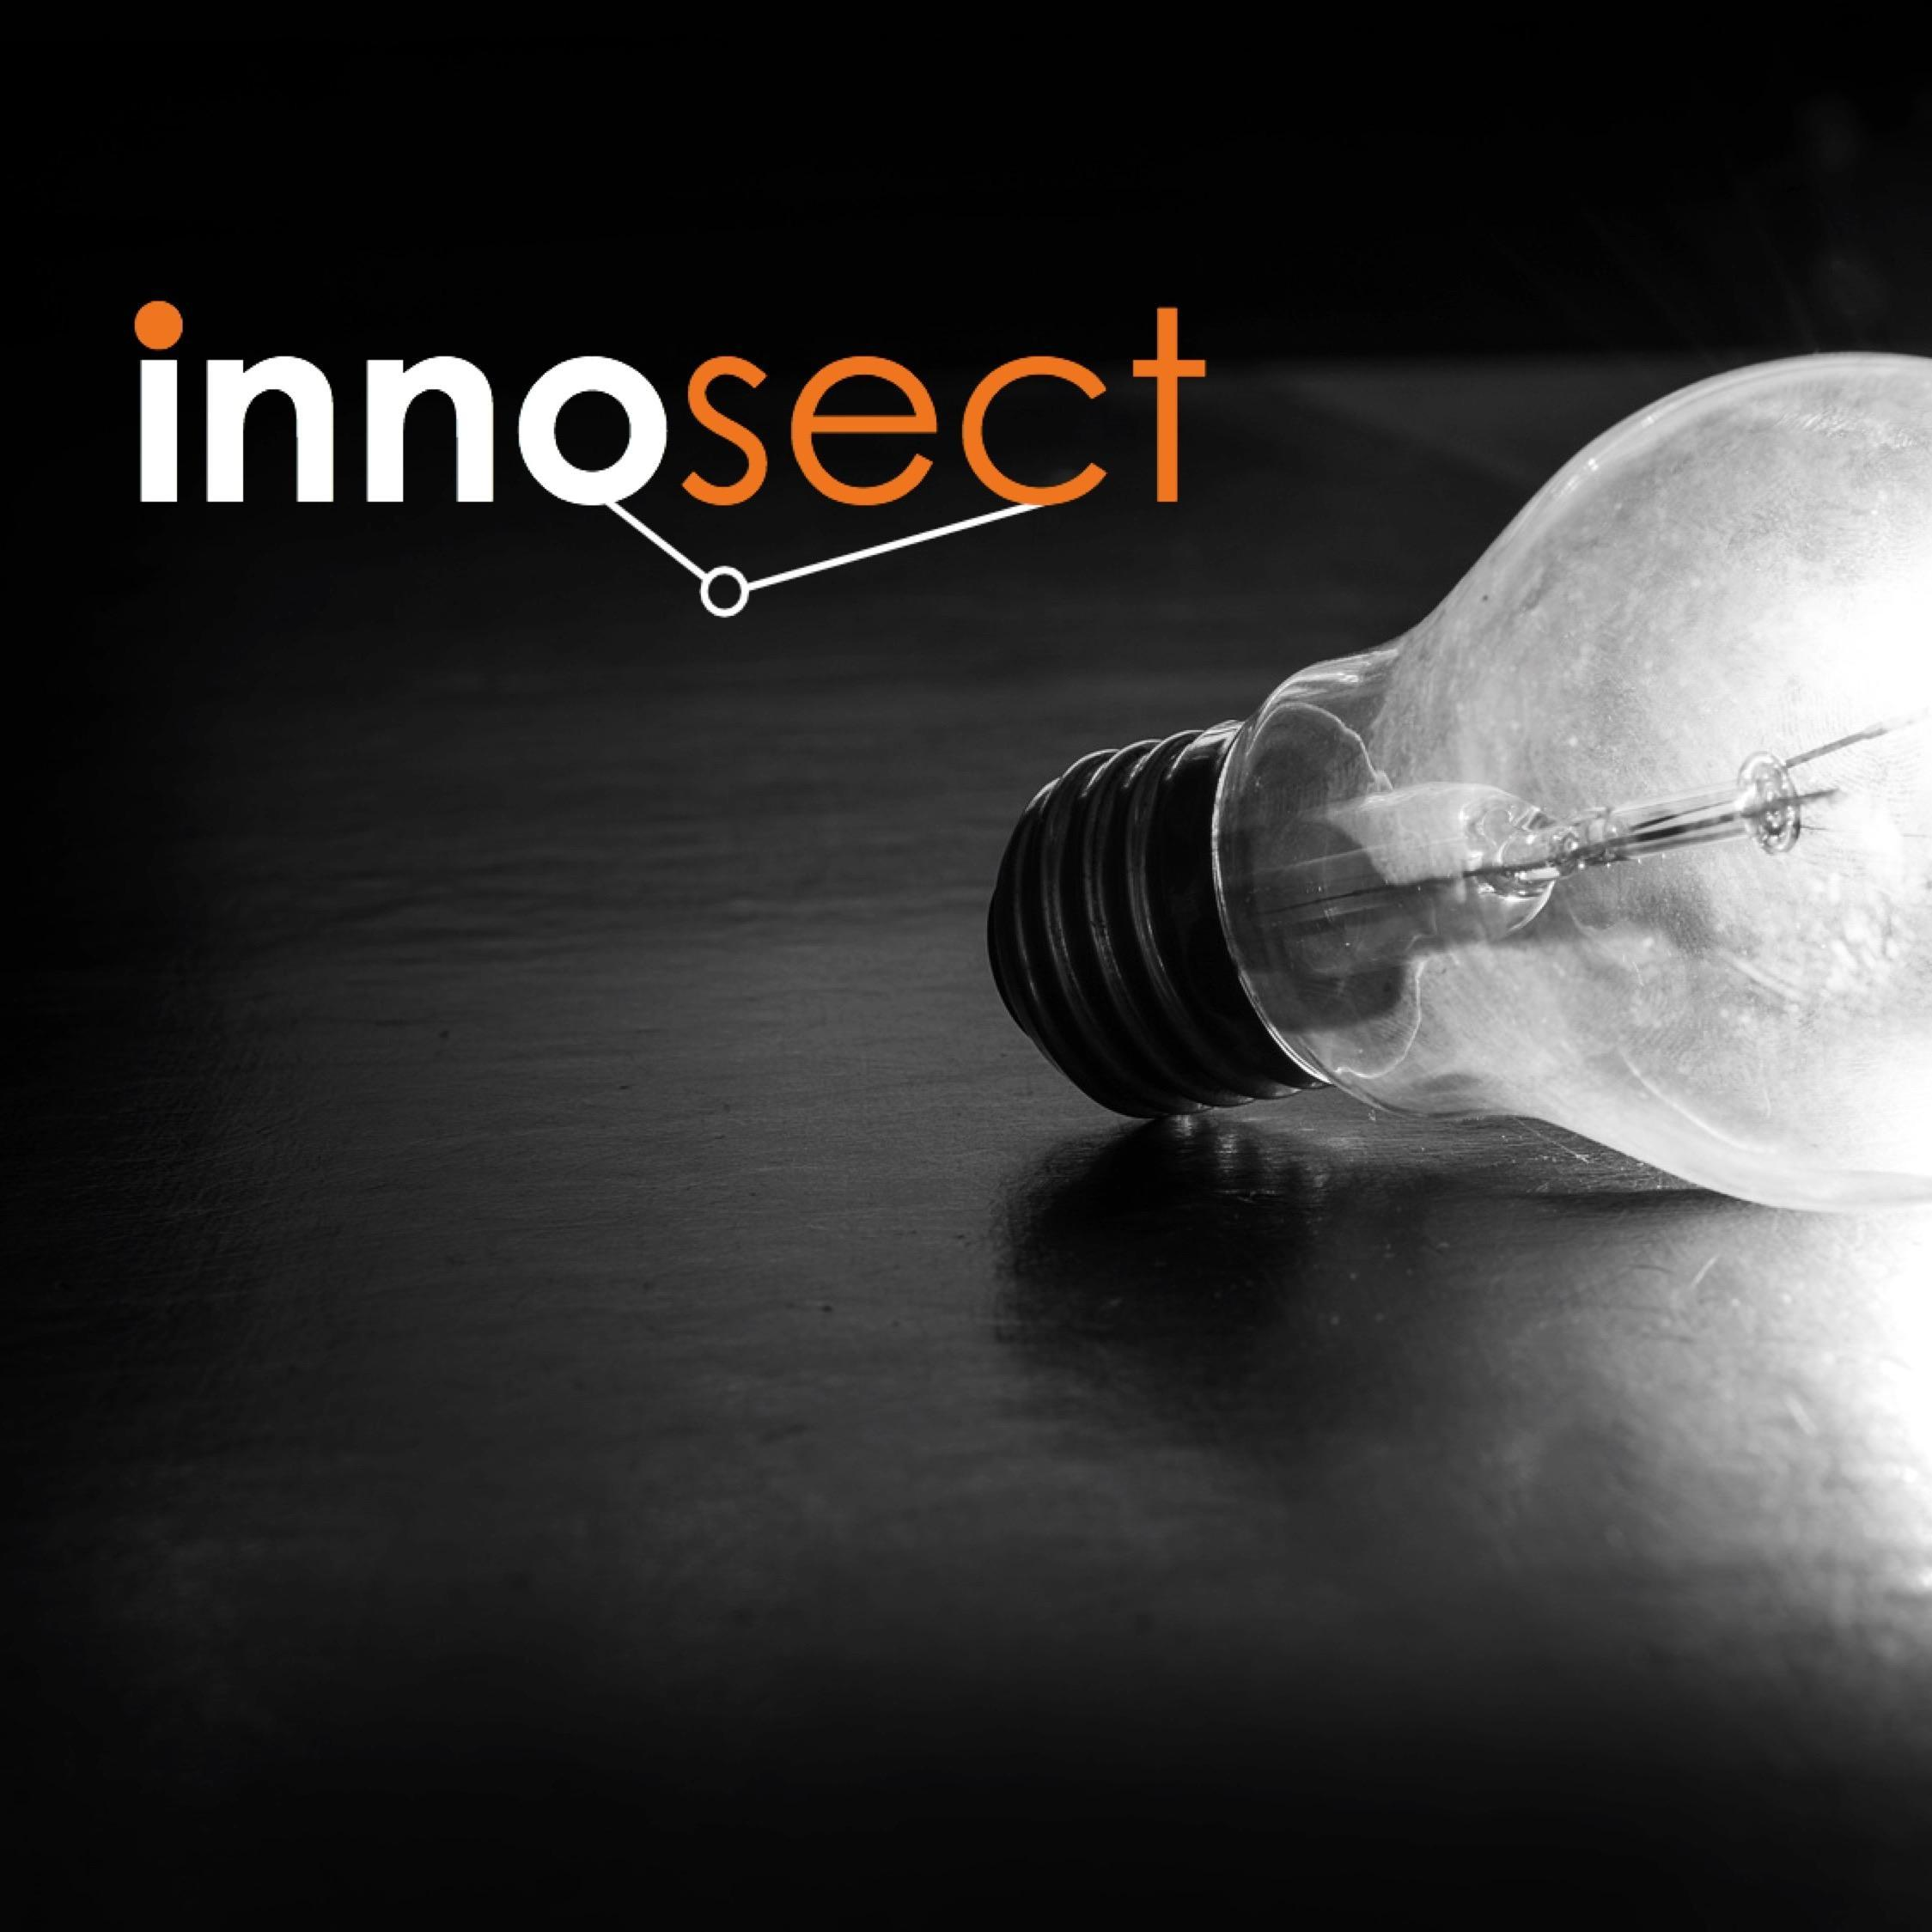 Innosect